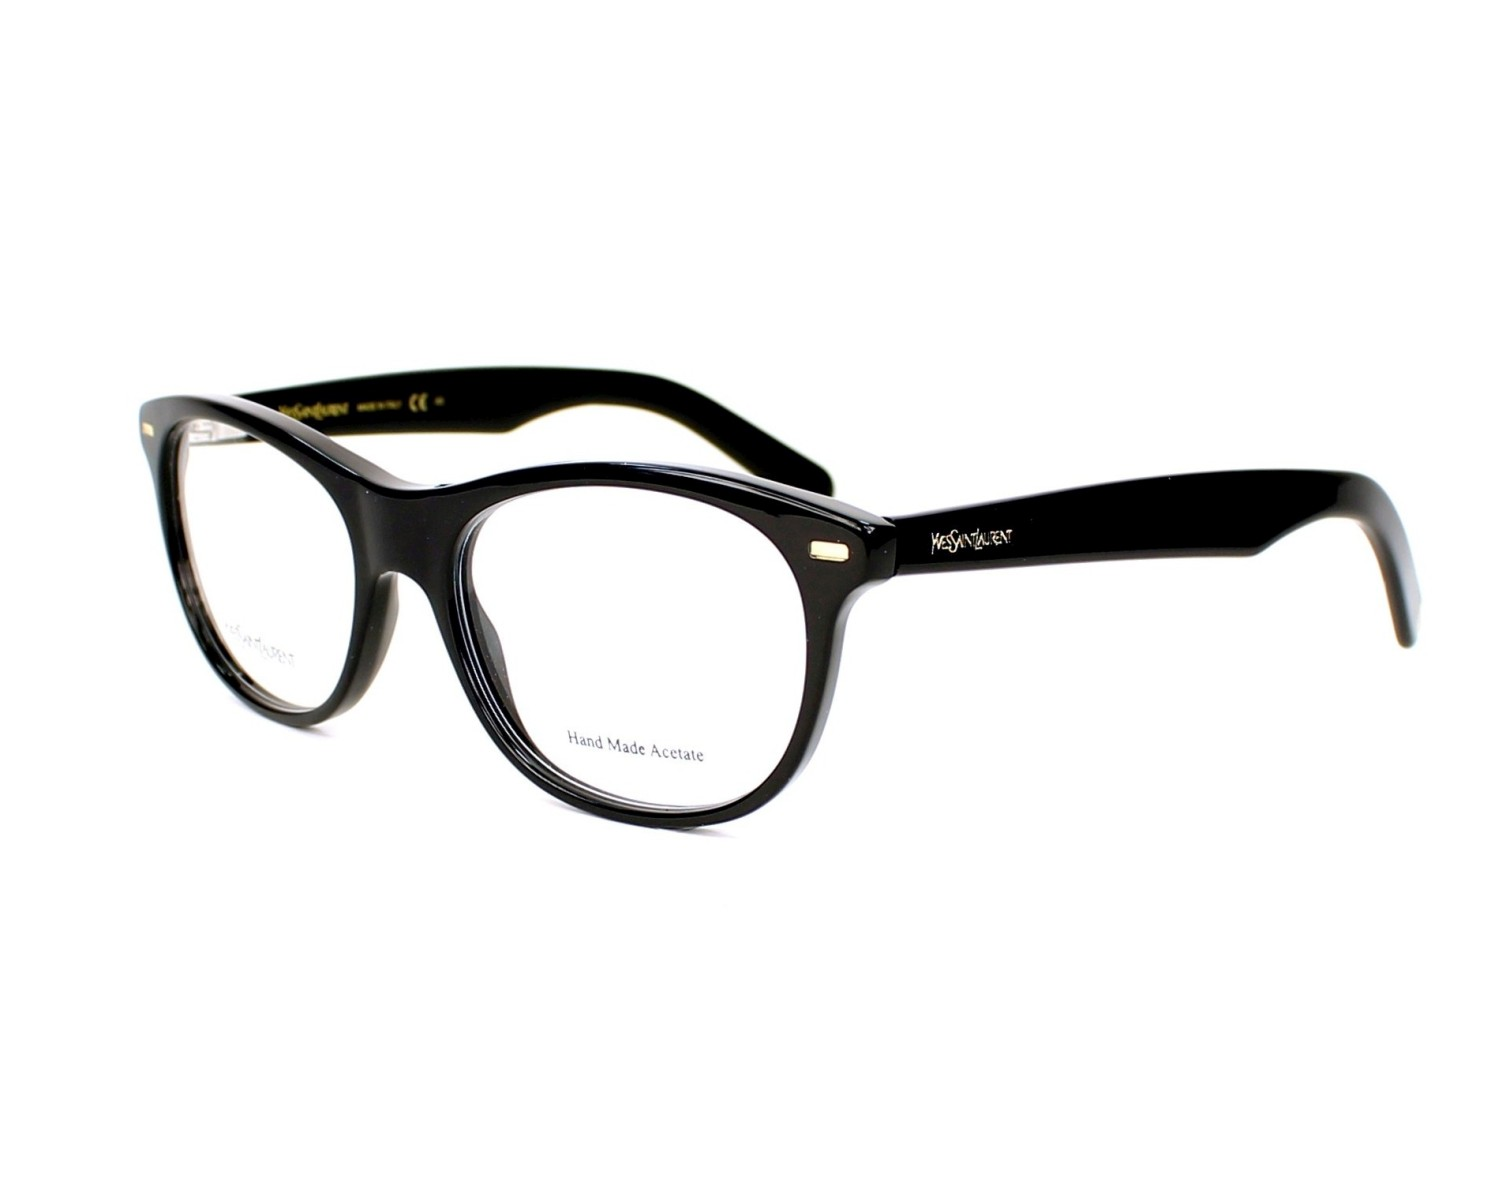 Order your Yves Saint Laurent eyeglasses YSL 2349 807 53 today